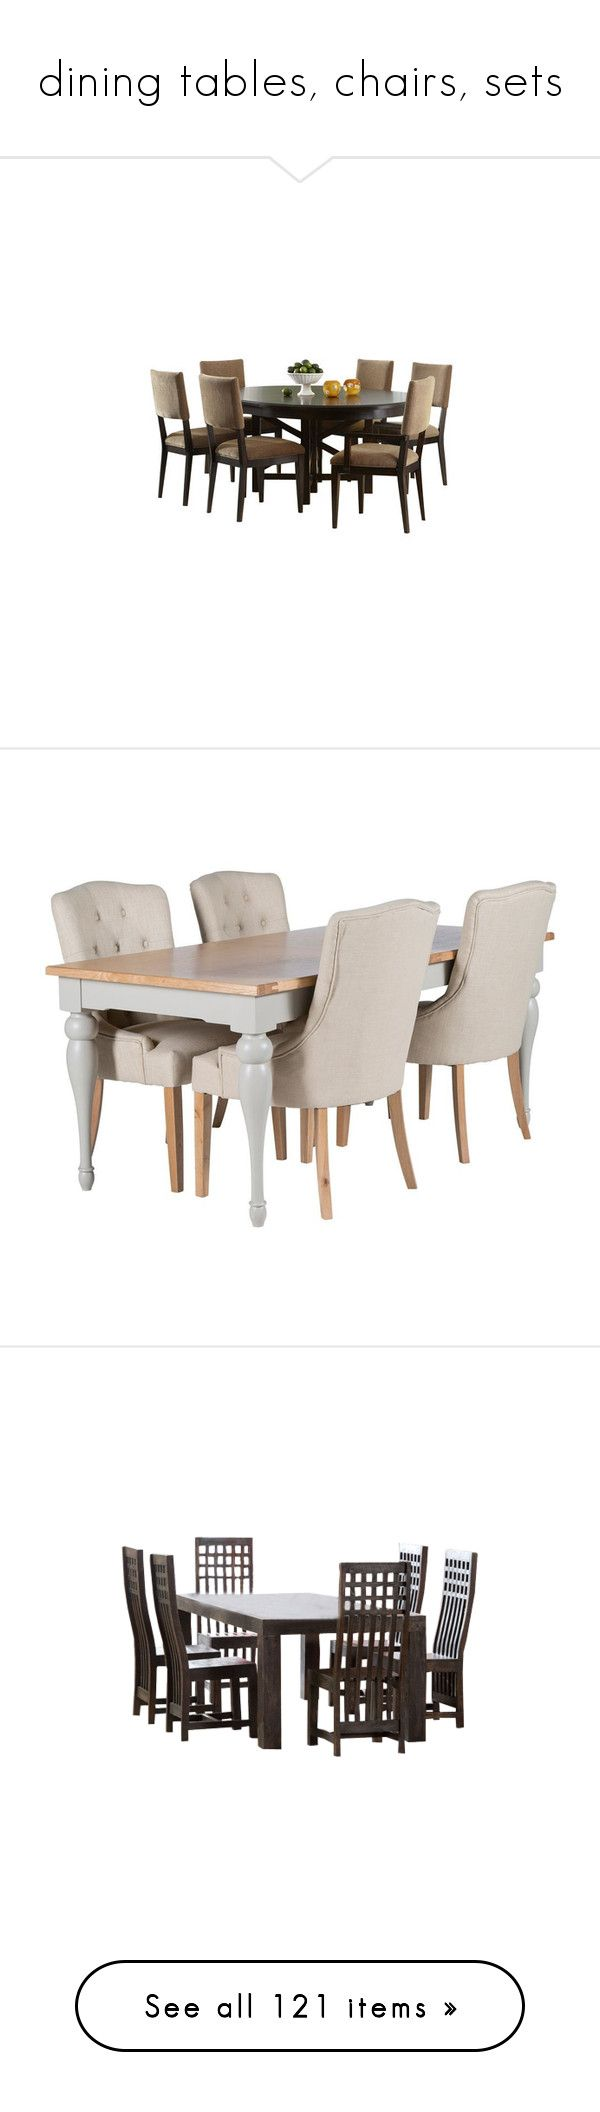 """""""dining tables, chairs, sets"""" by coralkahler ❤ liked on Polyvore featuring home, furniture, seven piece dining set, wood furniture, wooden table and chairs, wooden table chairs, wooden dining set, chairs, dining chairs and cream dining chairs"""